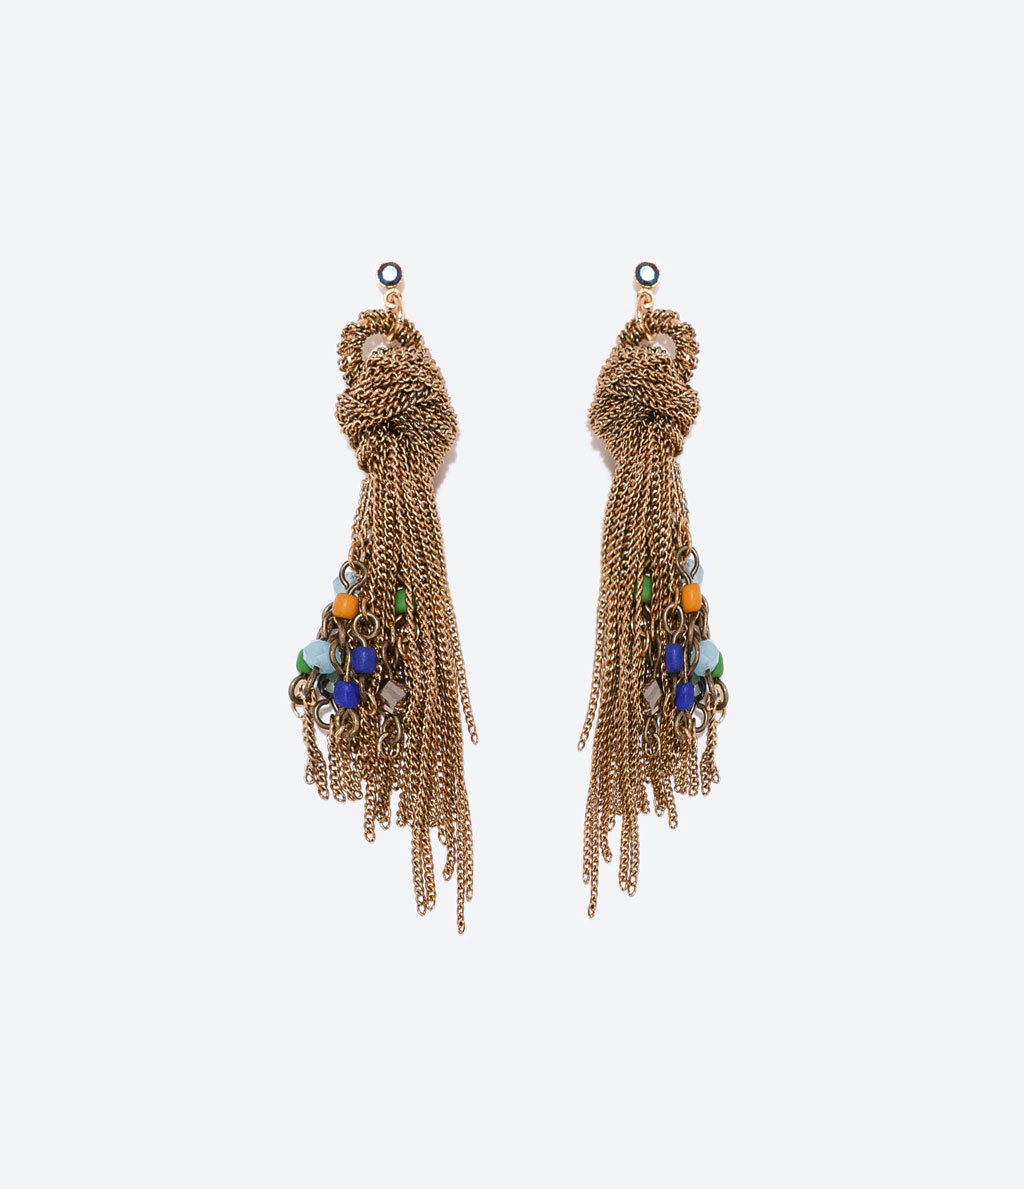 Chain Knot Earrings - predominant colour: gold; occasions: casual, evening, creative work; style: drop; length: long; size: standard; material: chain/metal; fastening: pierced; finish: plain; embellishment: beading; season: a/w 2014